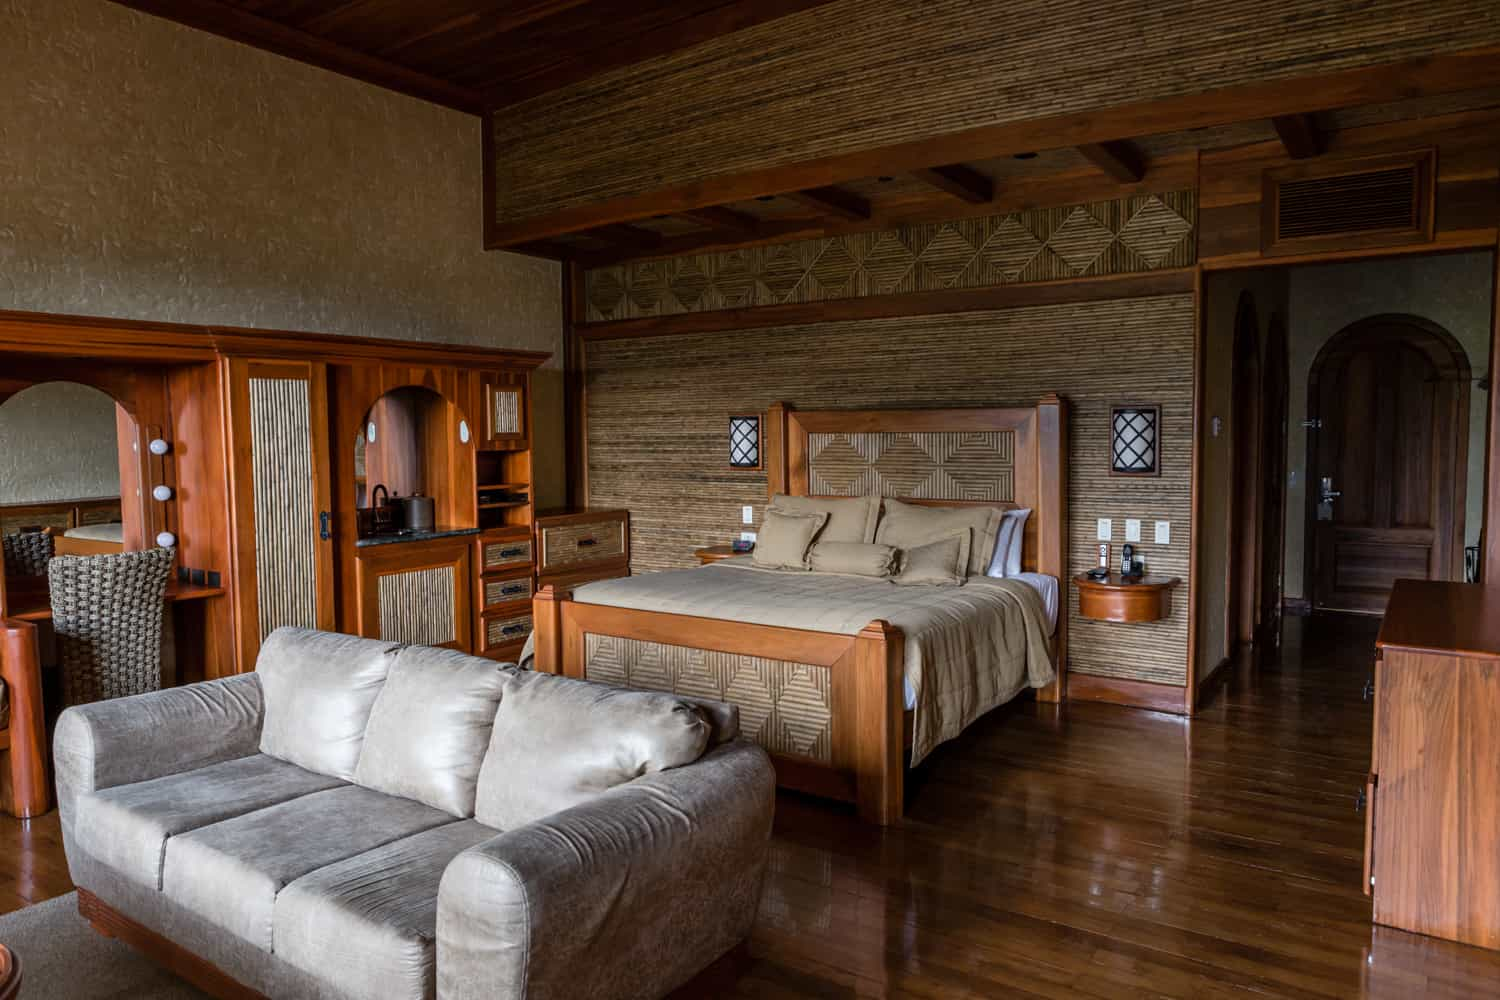 Master bedroom with king bed and wood floors.